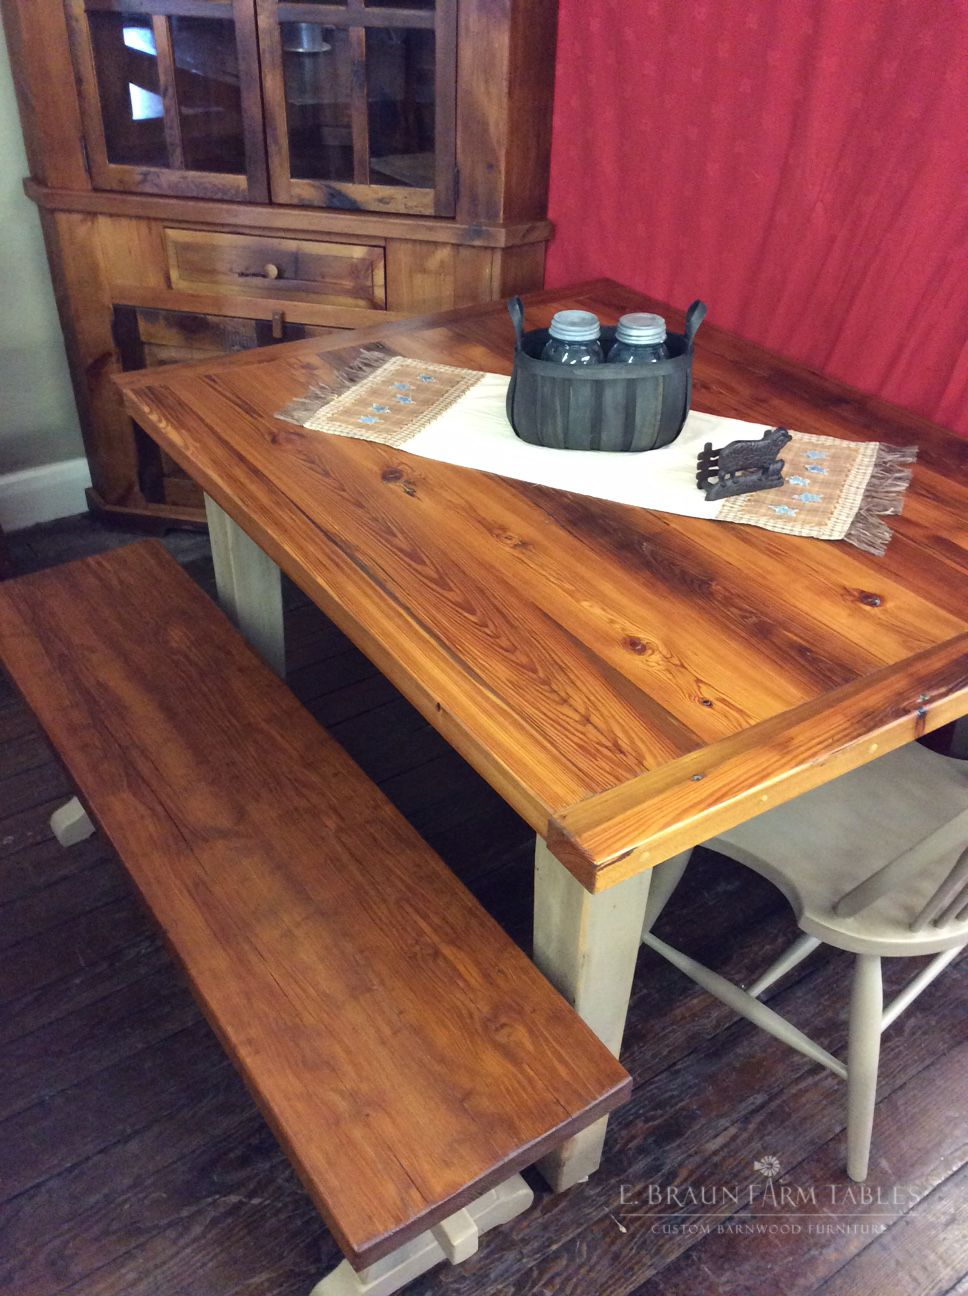 Reclaimed Yellow Pine Barn Wood Farm Table And Bench Natural With - Natural wood farm table